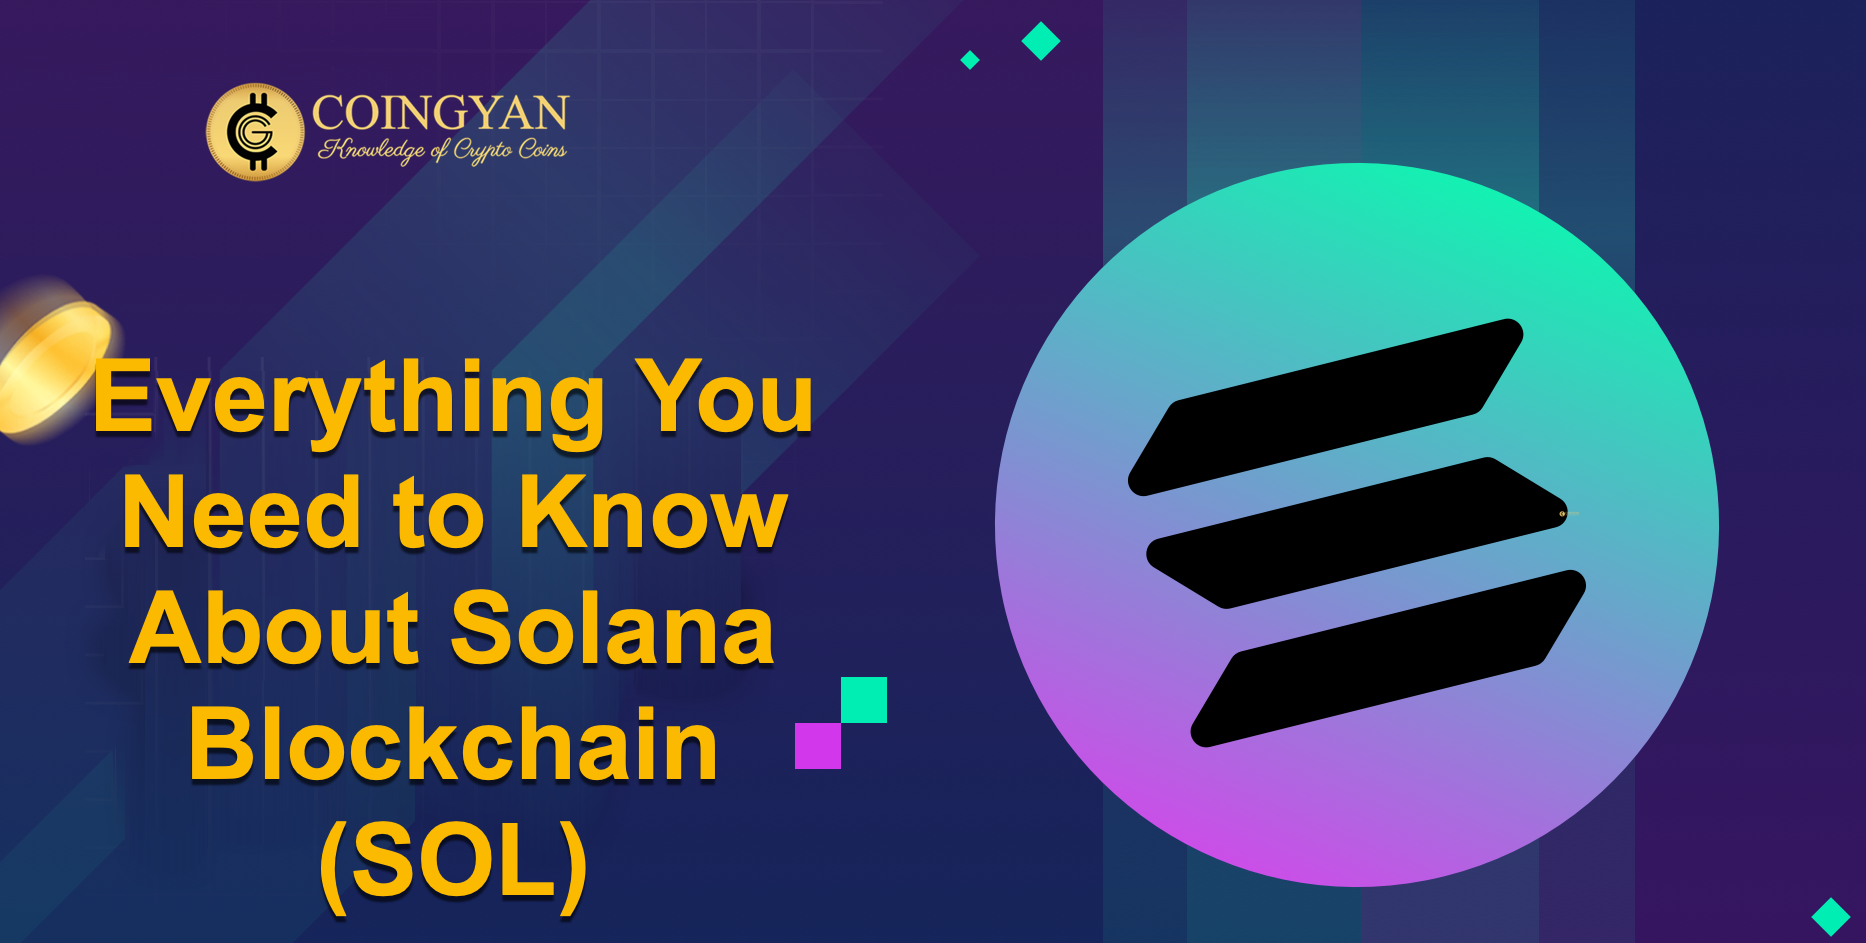 Everything You Need to Know About Solana Blockchain (SOL) - CoinGyan